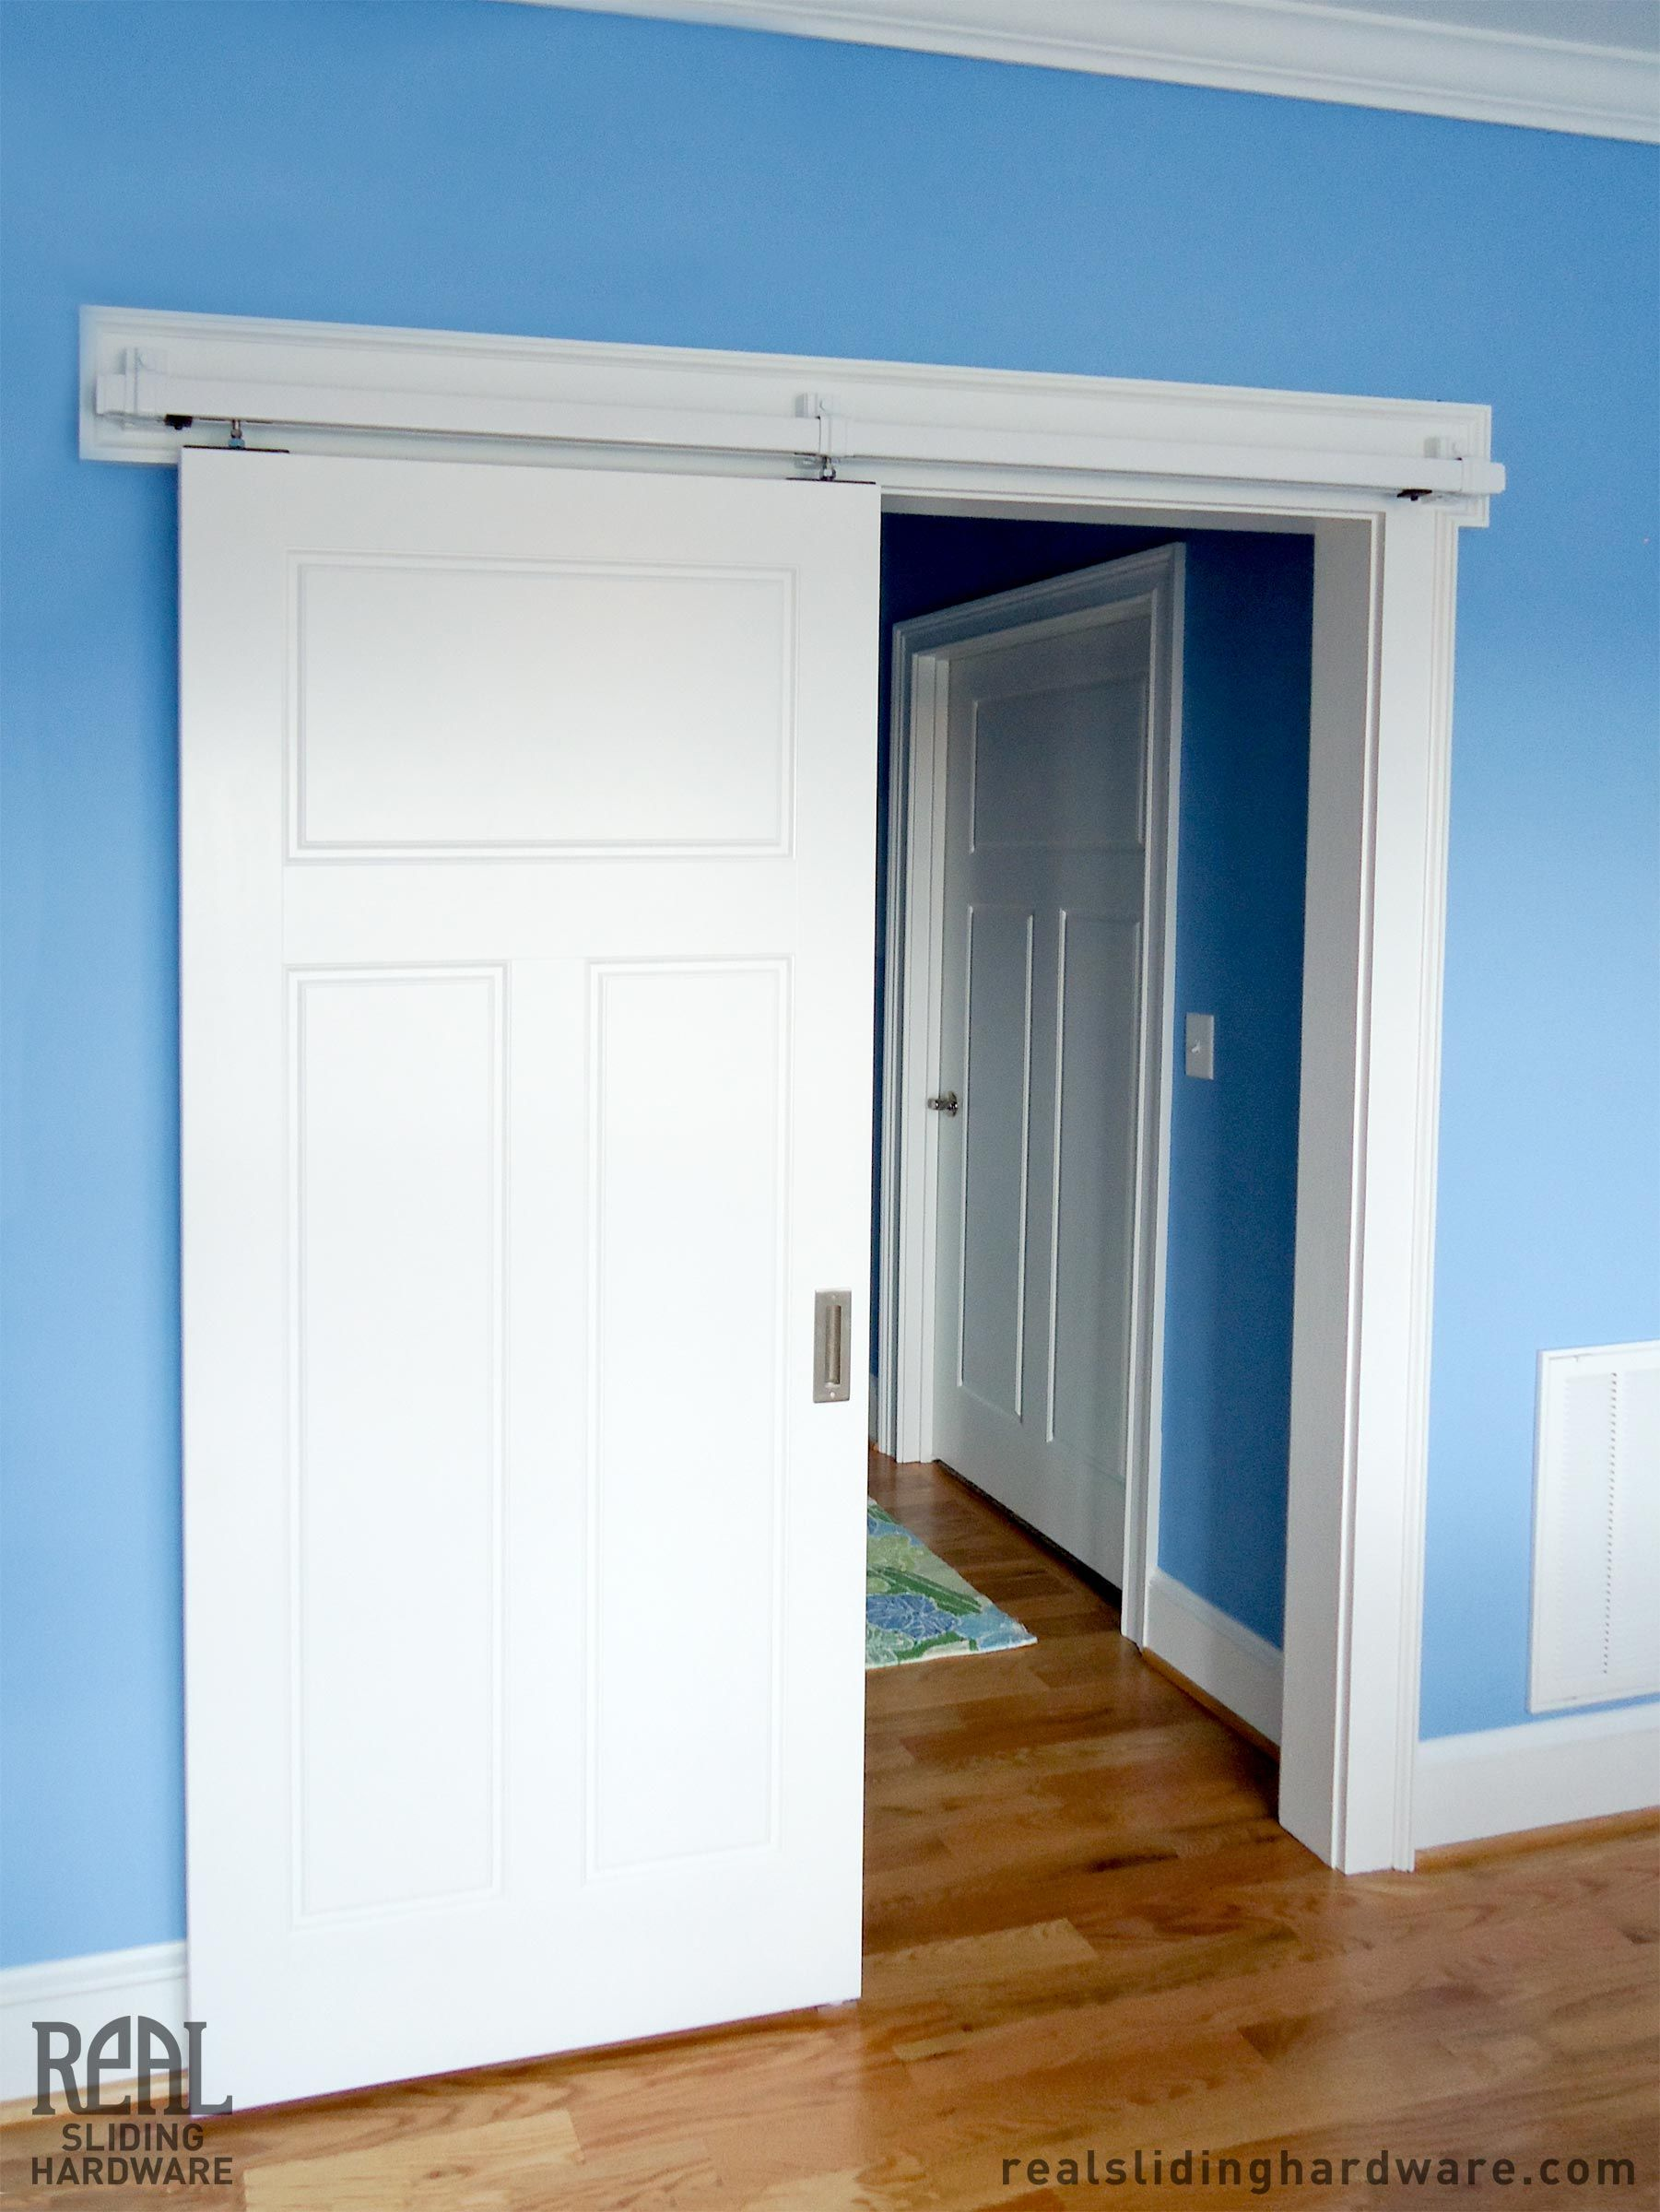 Box Rail Hardware Painted White To Match The Door Janelas Portas